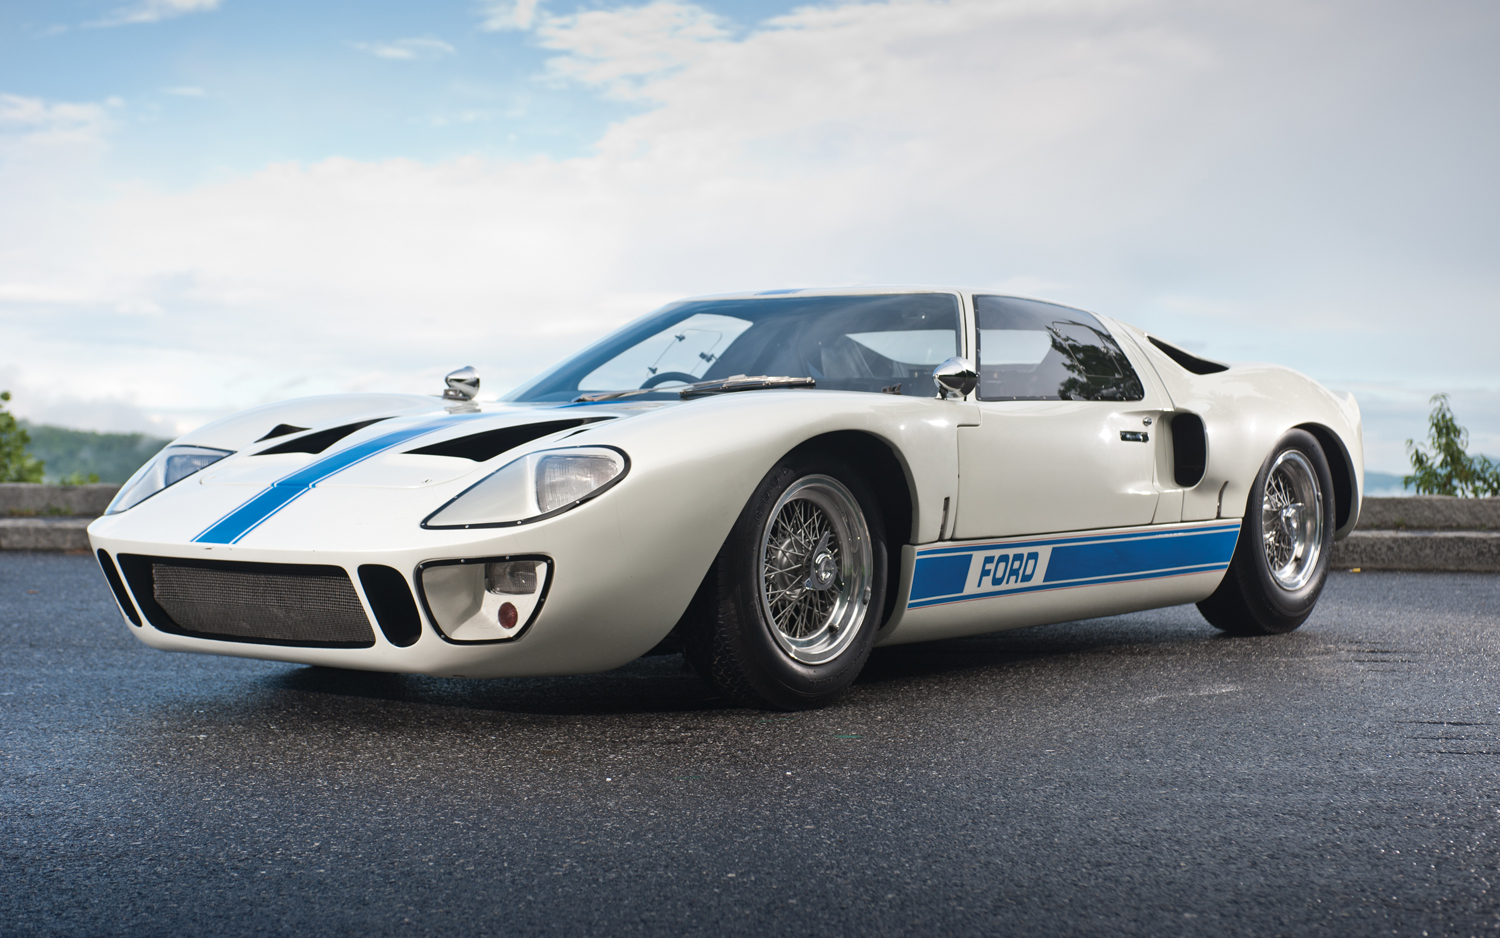 Our list of sexy cars includes the 1967 Ford GT40